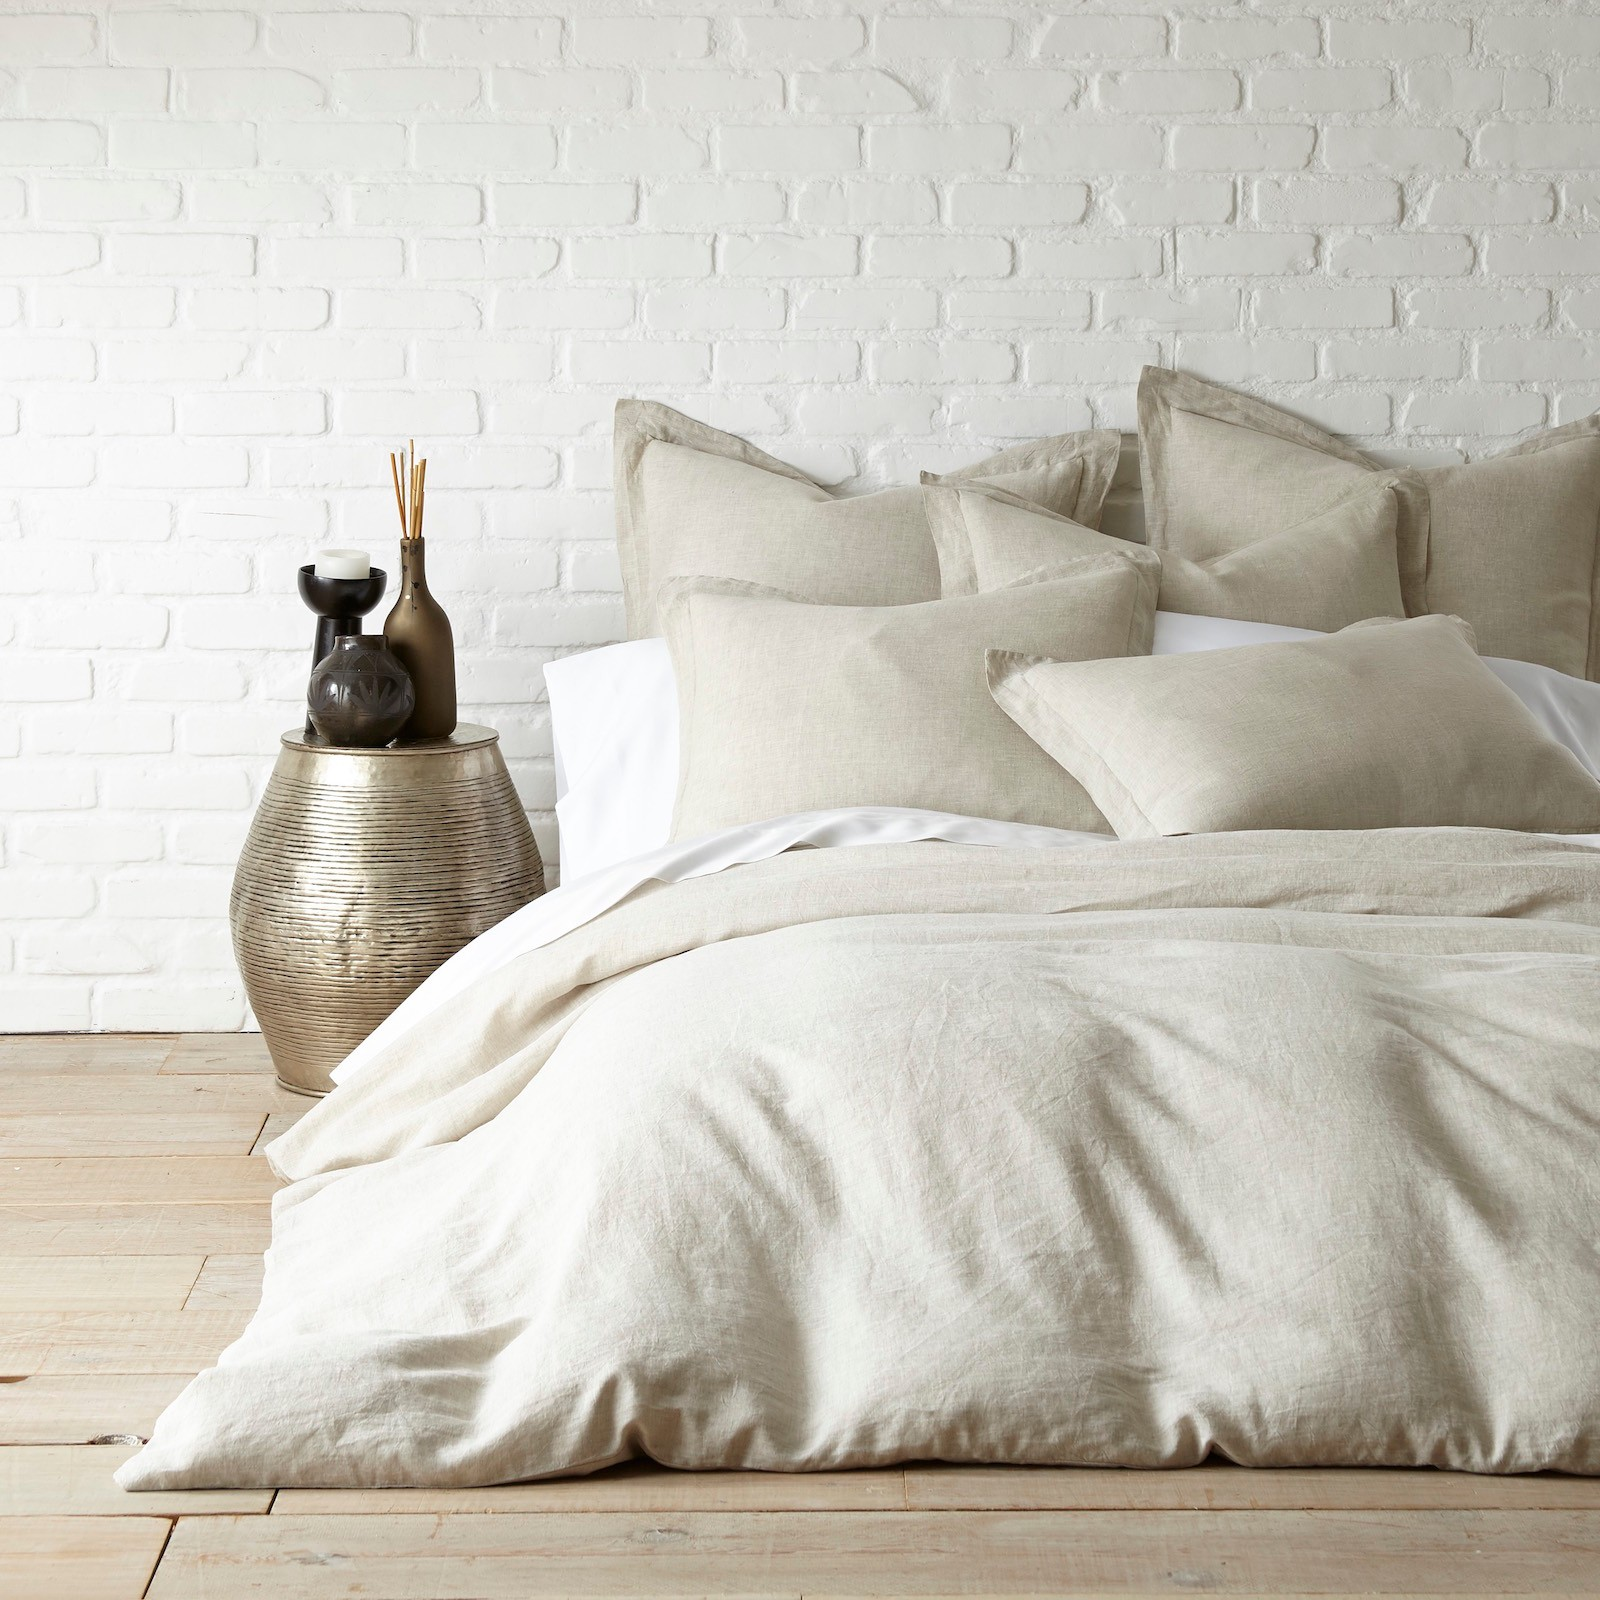 Washed Linen Duvet Cover | Zola : washed linen quilt cover - Adamdwight.com